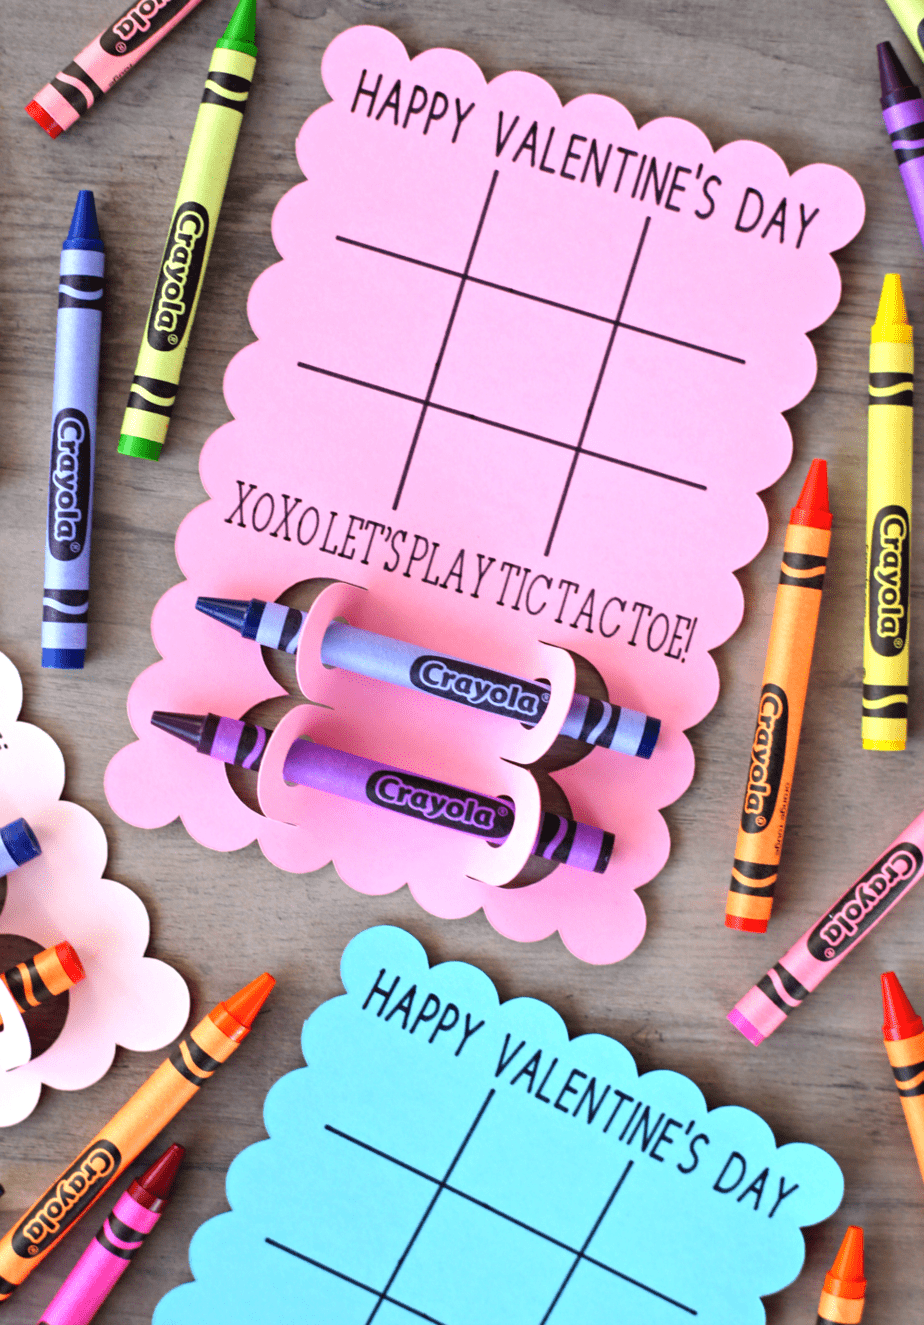 https://www.happygoluckyblog.com/wp-content/uploads/2018/01/Valentine-Tic-Tac-Toe-Cards-2.png